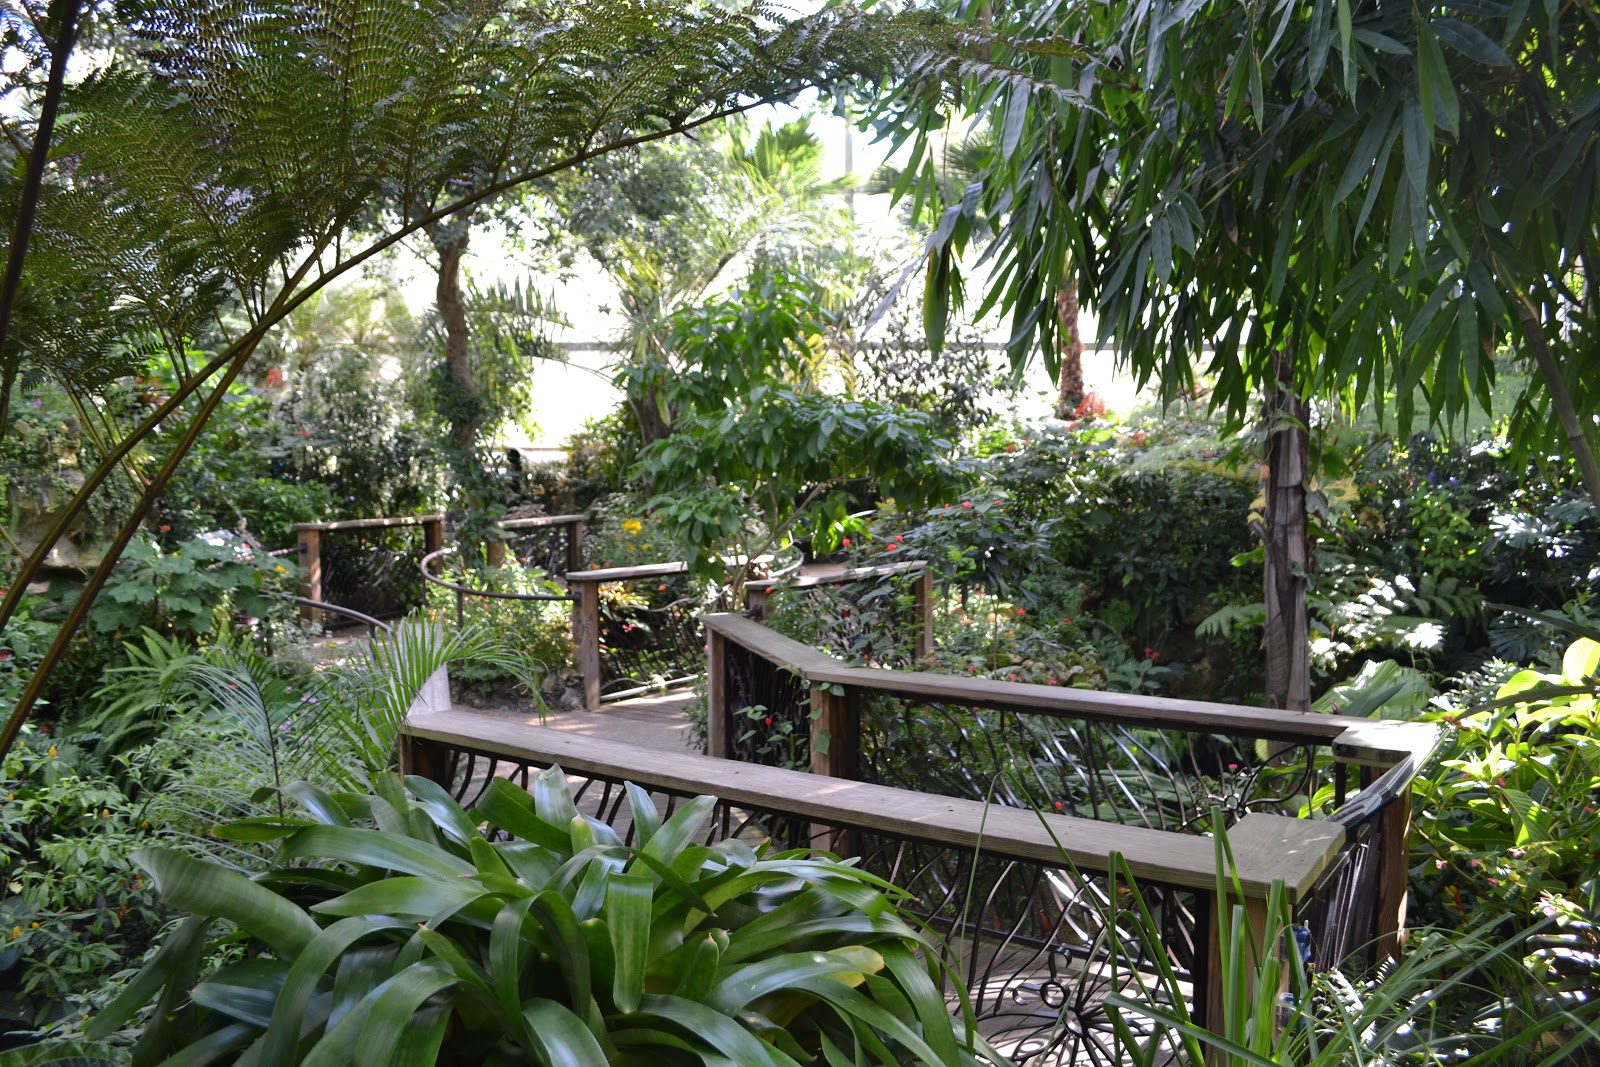 Field Trip Butterfly Rainforest At The Florida Museum Of